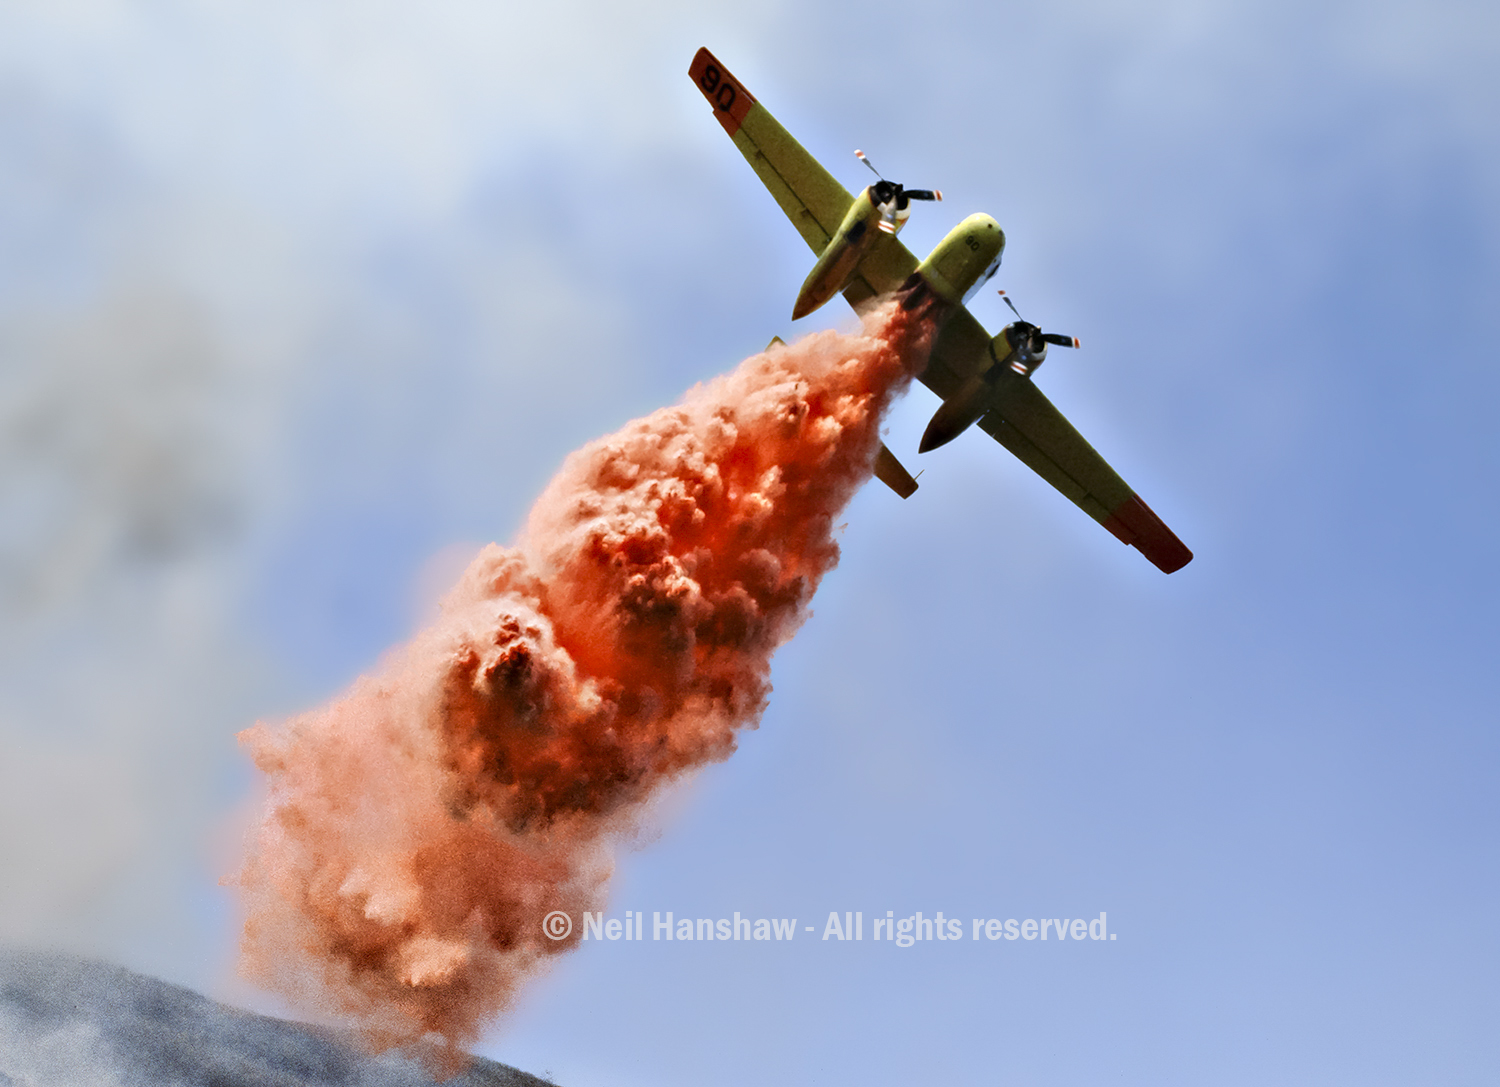 S2 aircraft drops fire retardant on fire at Mount Diablo. Unfortunately the red stuff hit me going 100 mph. Totaled all my camera equipment but film remained safe inside camera. Got helicopter ride to the ambulance.Shot with 24mm lens.